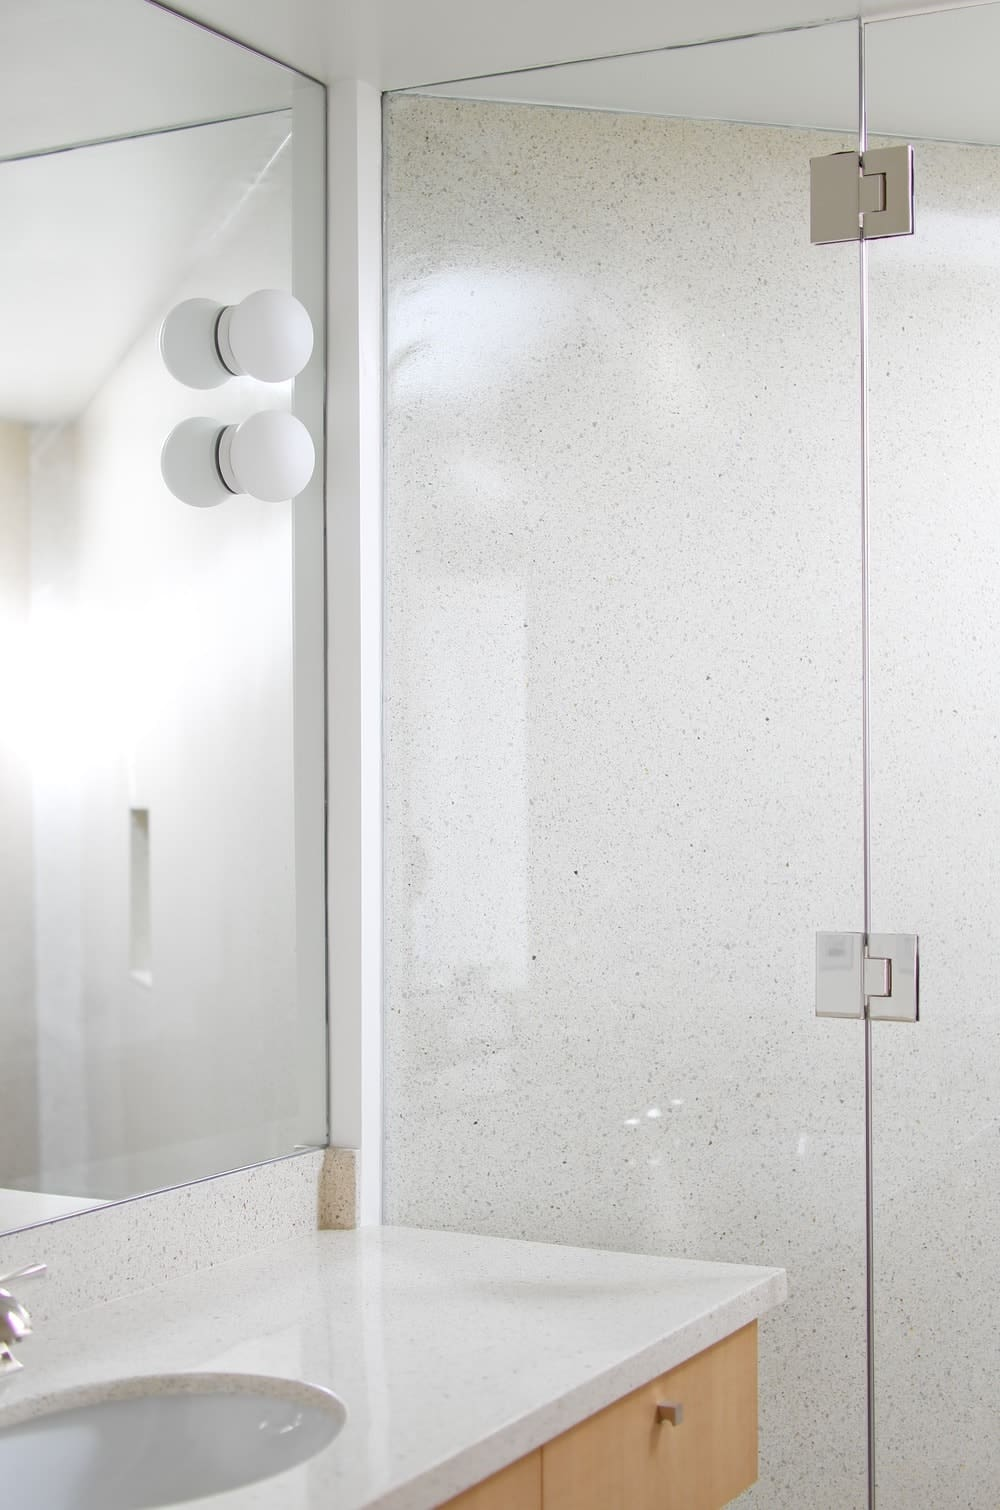 The bathroom offers walk-in shower and marble countertop sink. Photo Credit: Gerhard Heusch